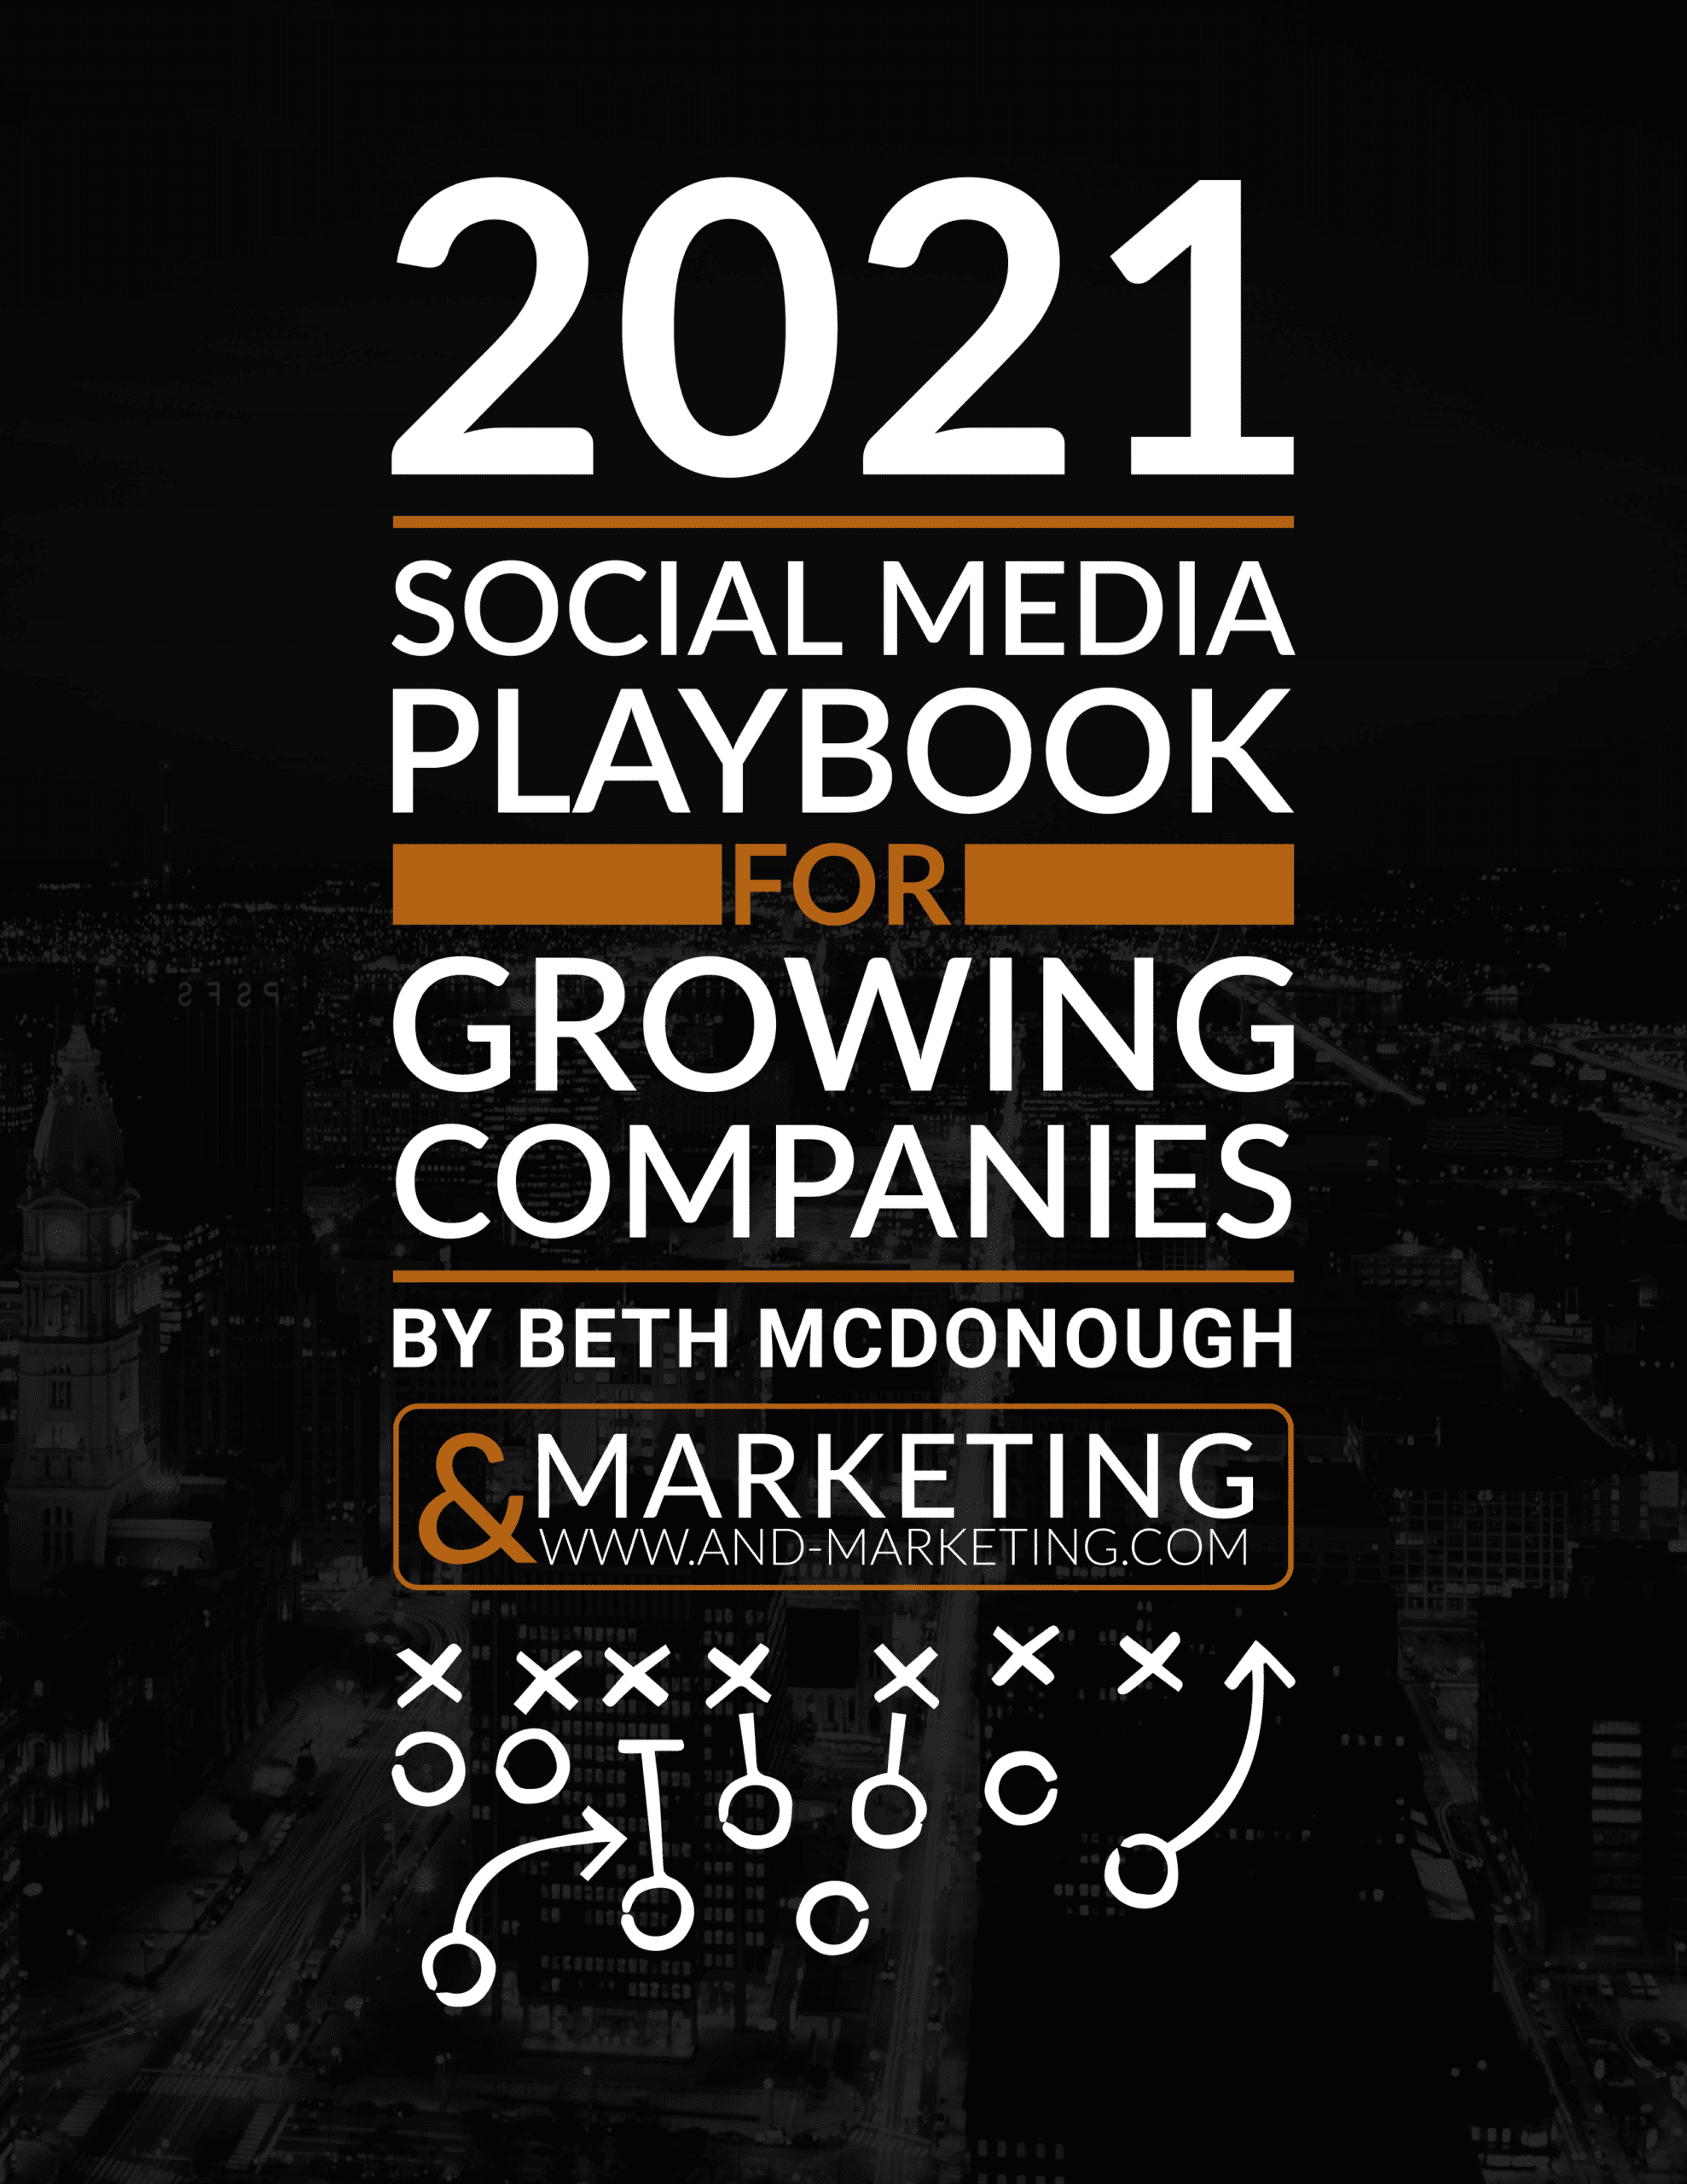 https://www.and-marketing.com/project/2020-social-media-playbook-for-growing-companies/